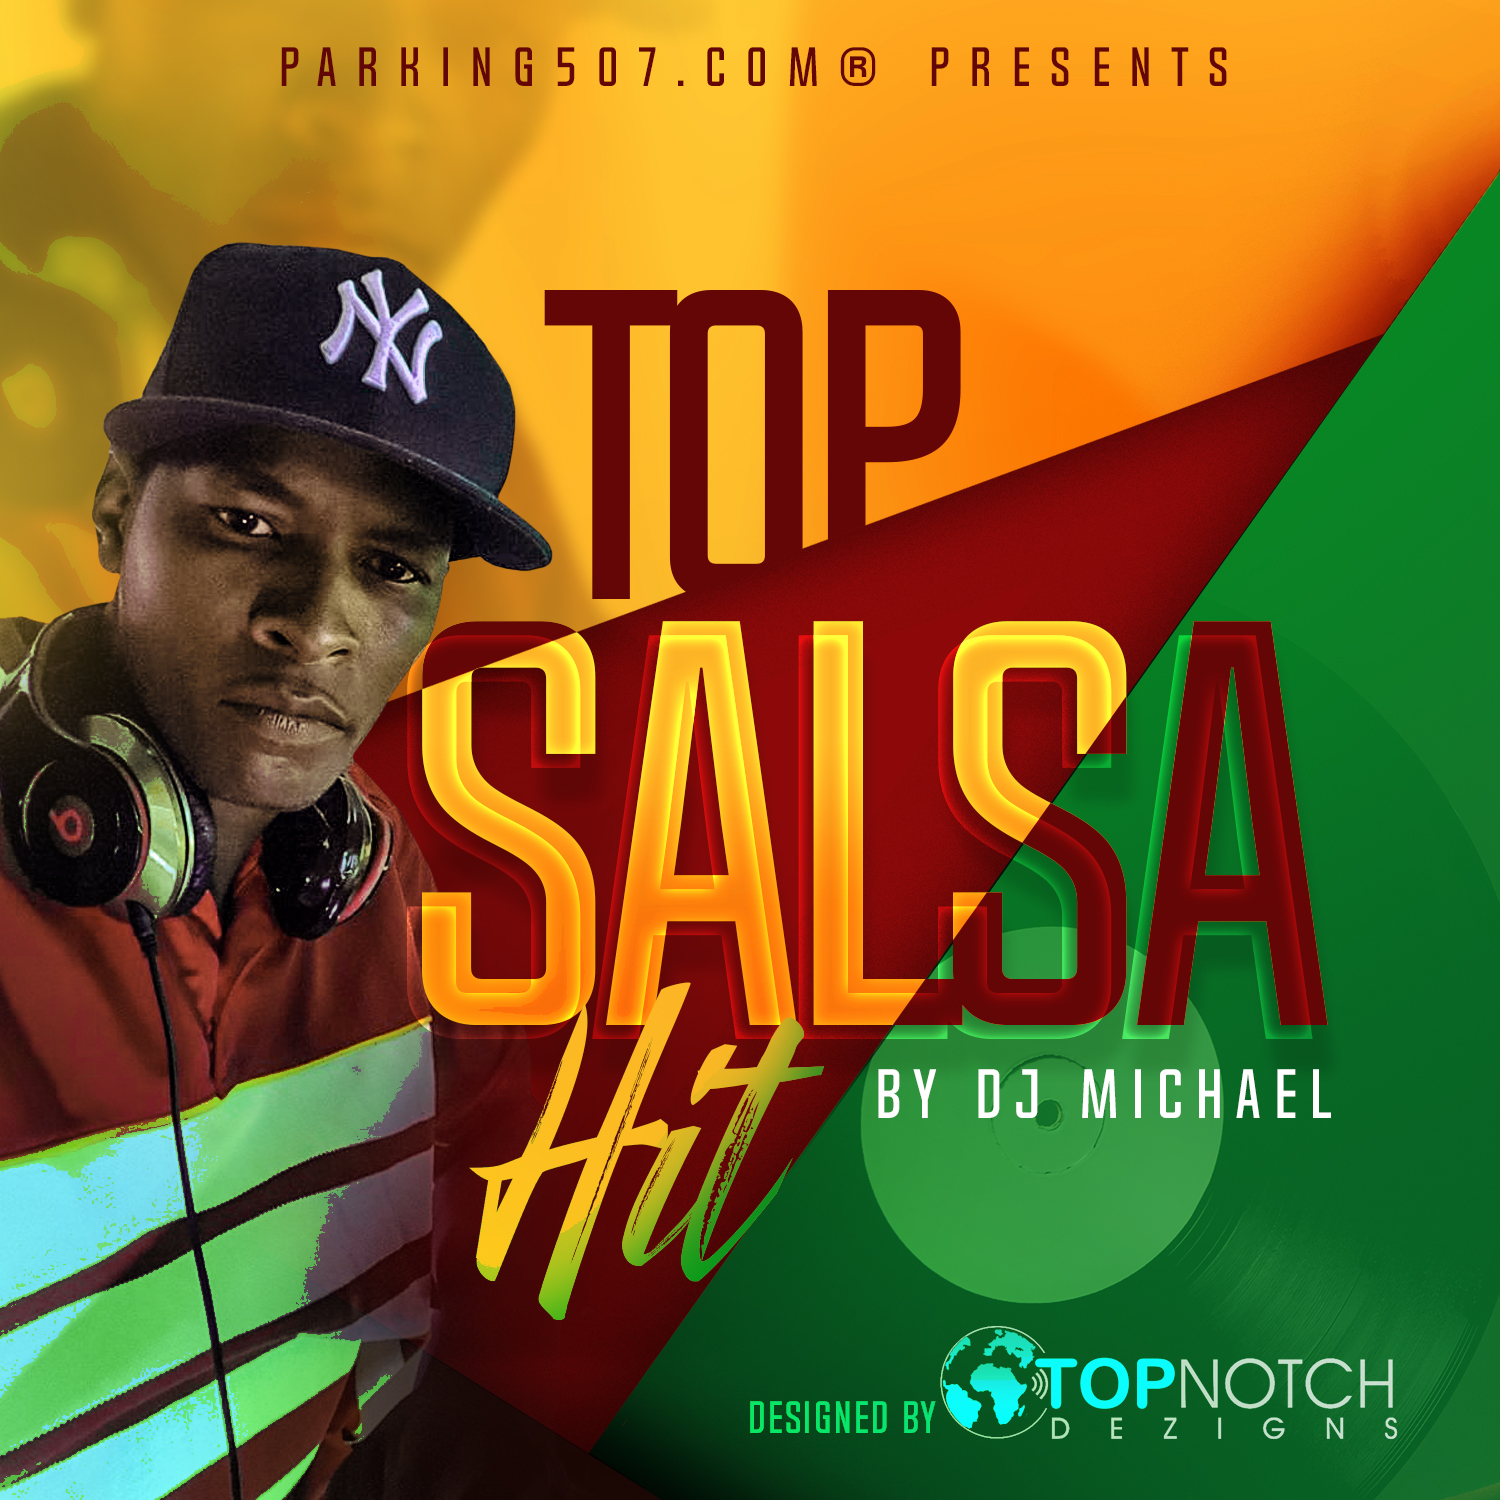 Parking507 DJ Michael Top Salsa Hits